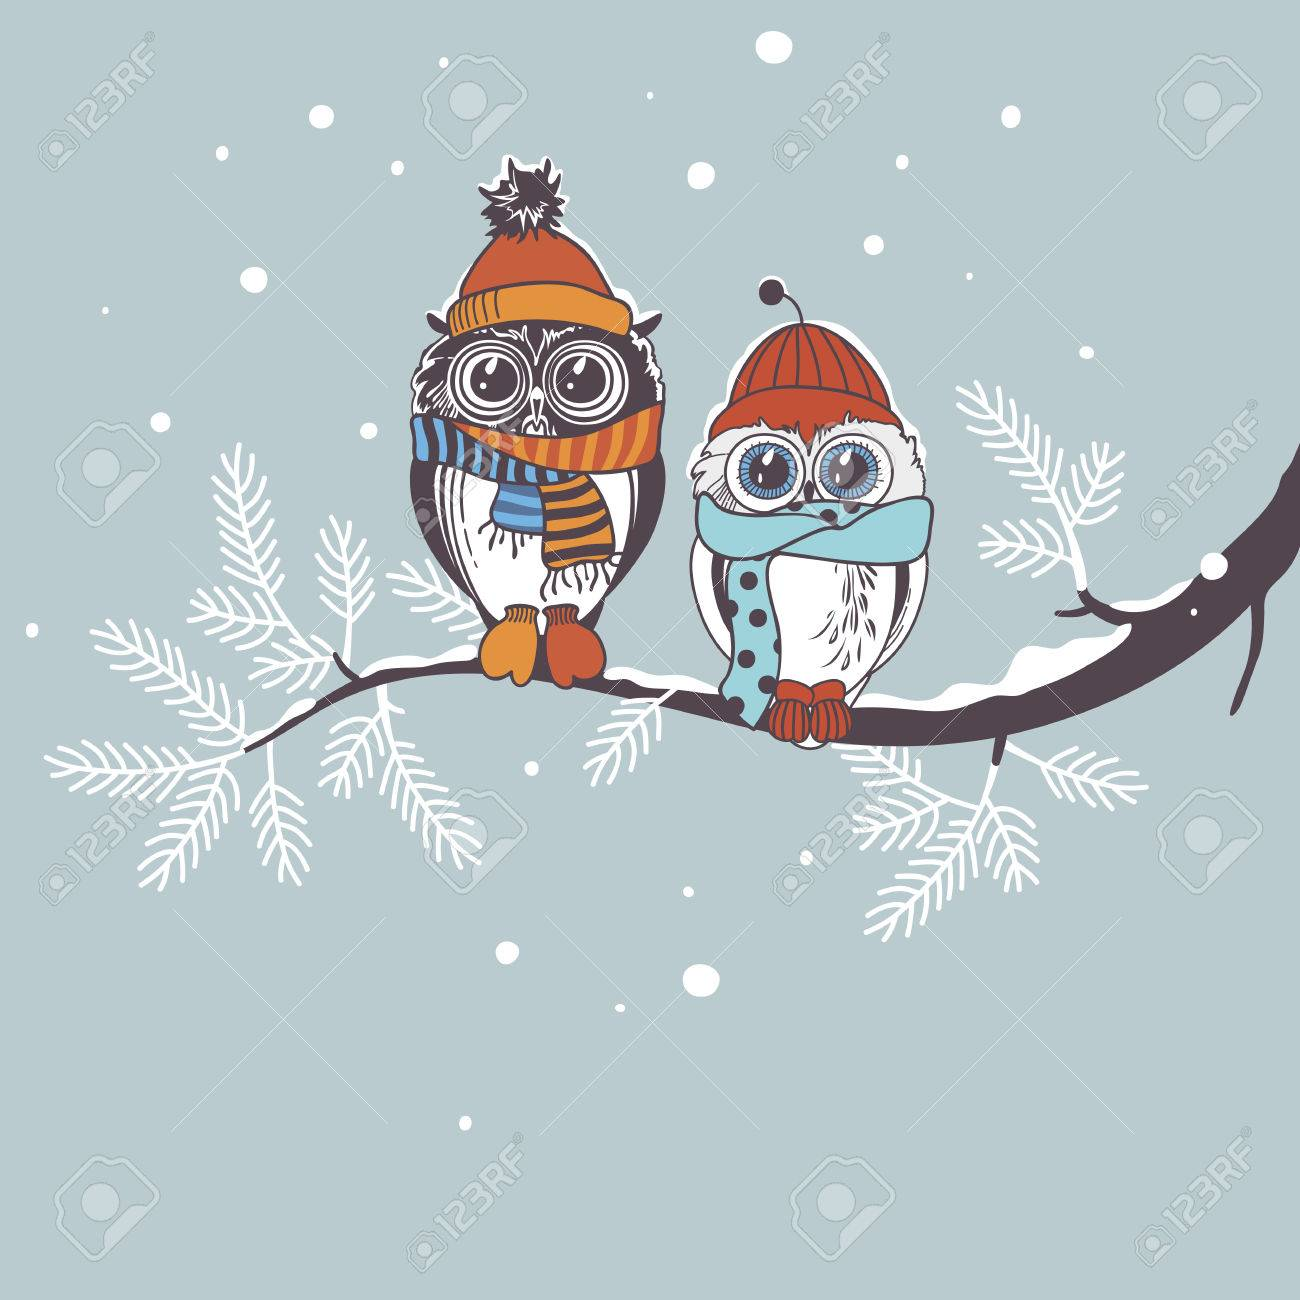 Template card with owls on branch greeting card for winter holidays template card with owls on branch greeting card for winter holidays drawing owl couple m4hsunfo